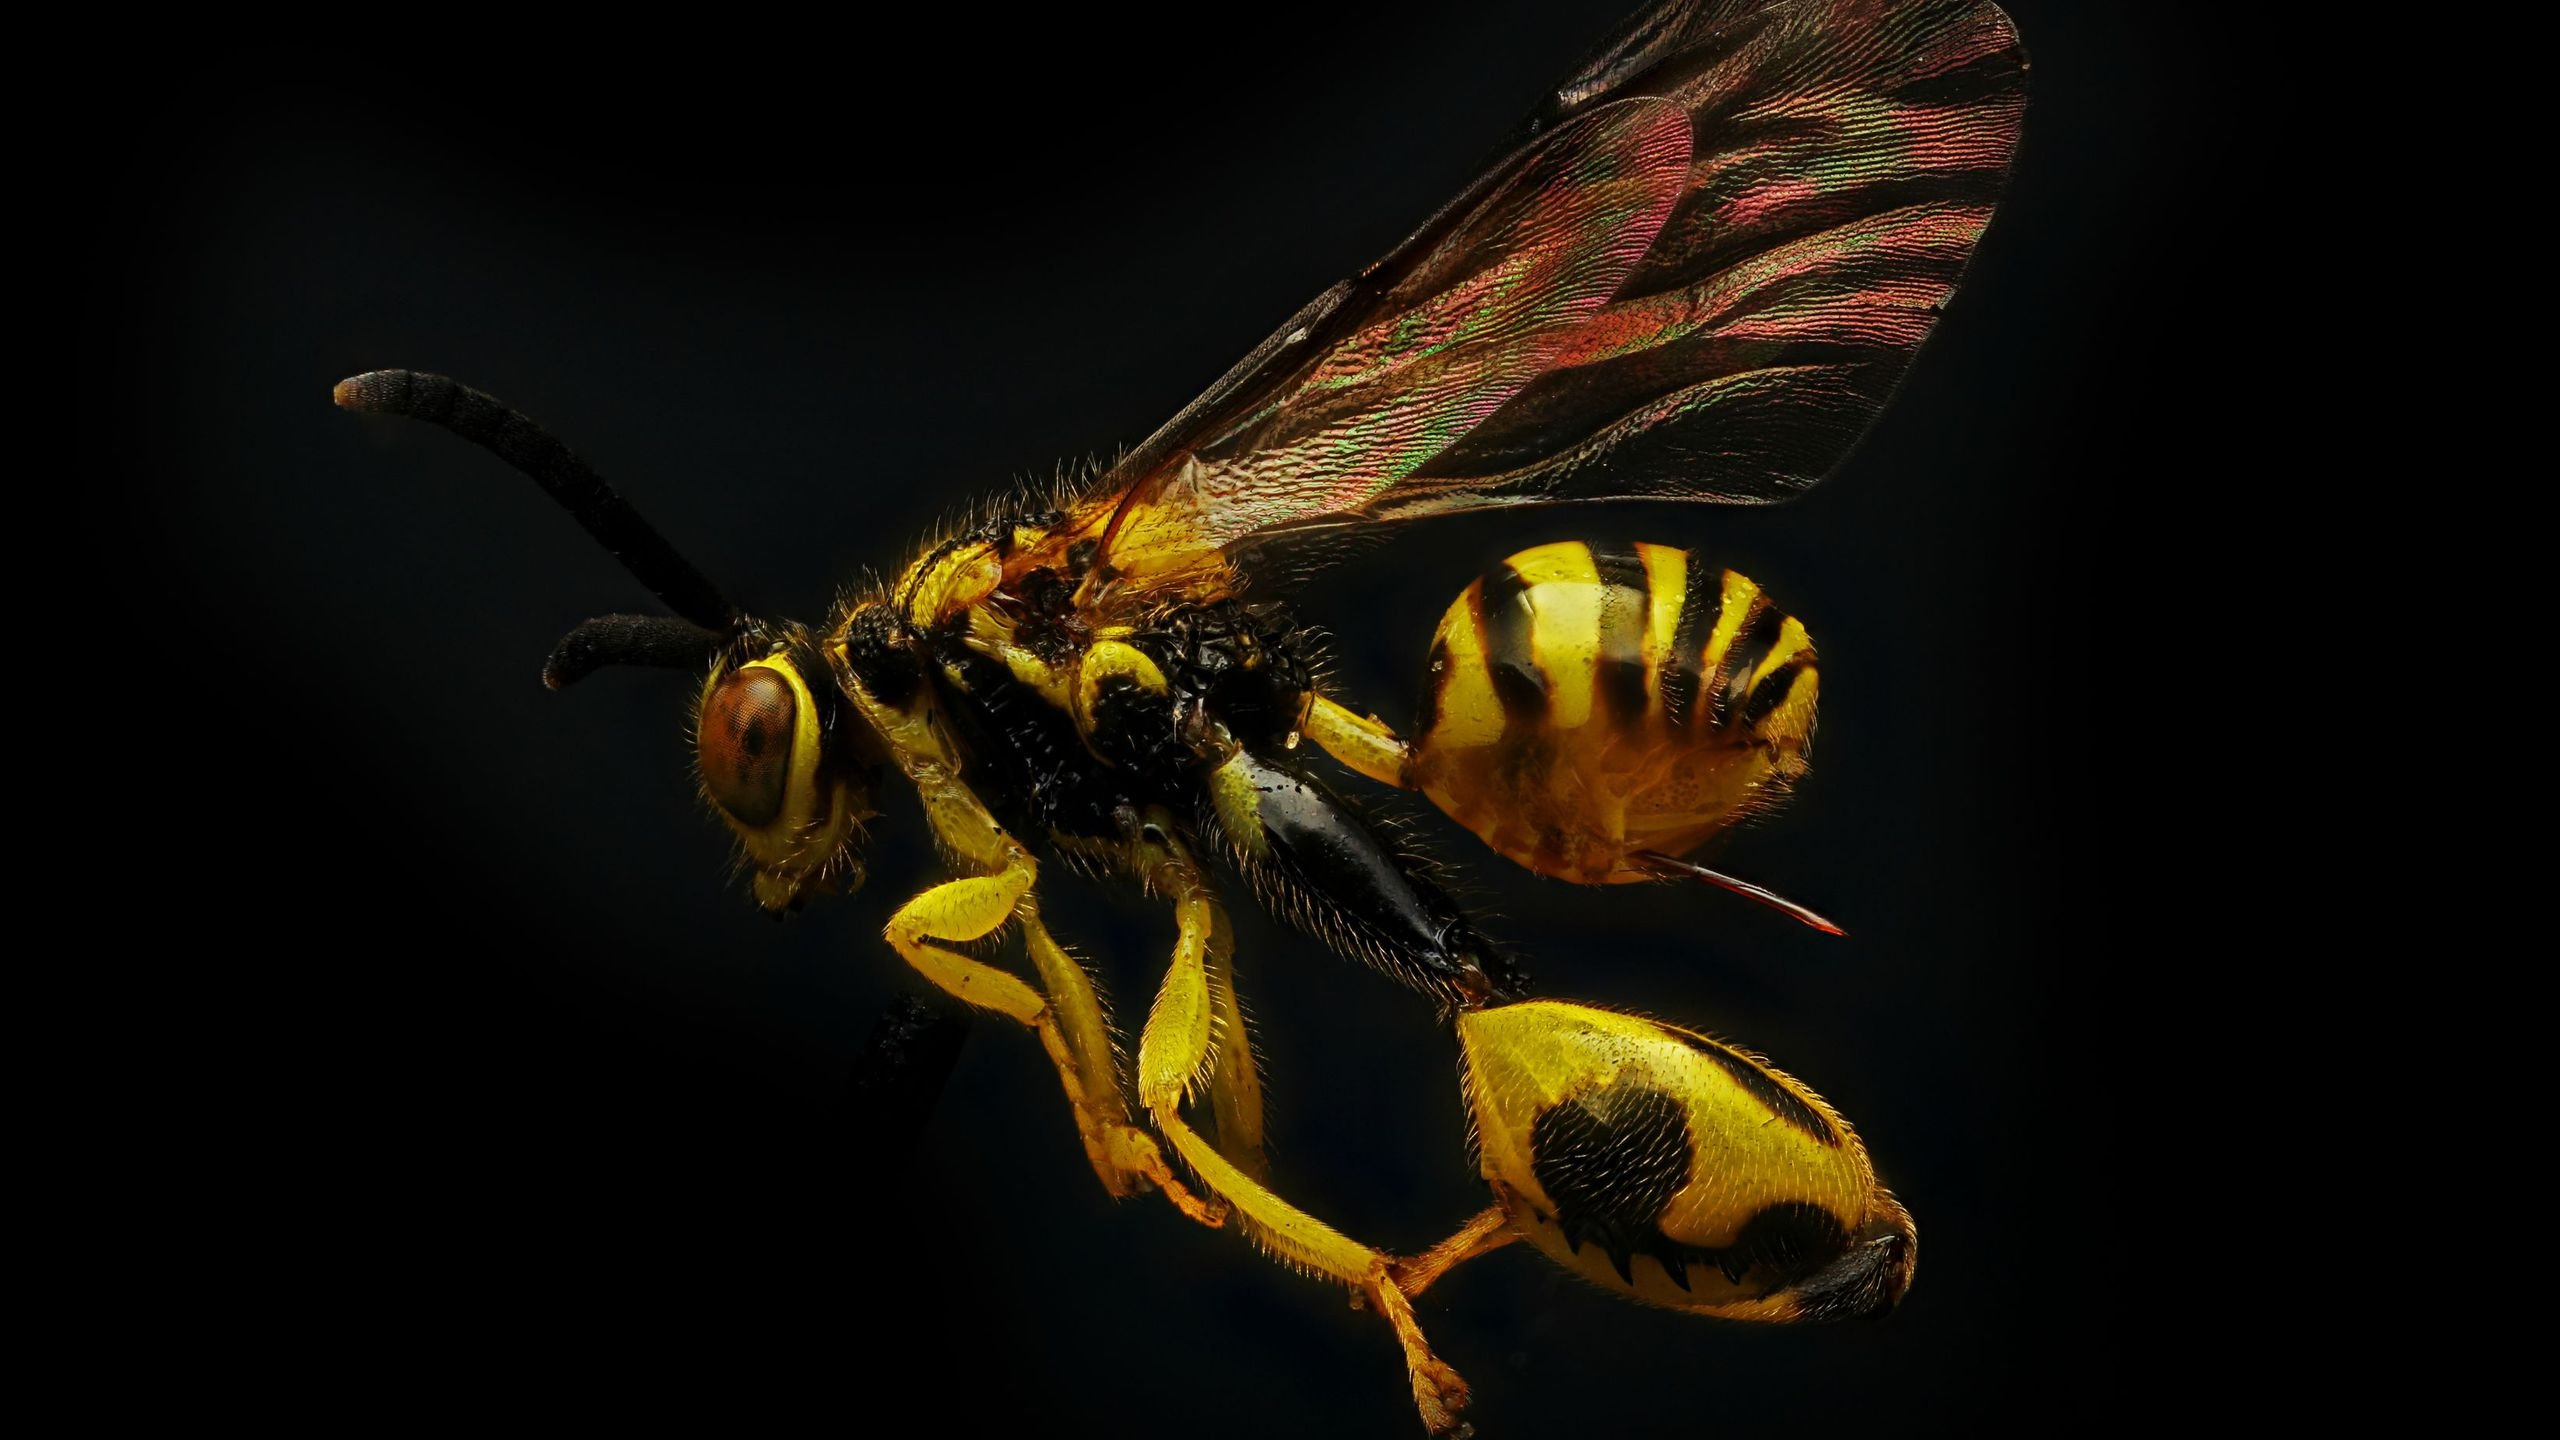 wasp 4K wallpapers for your desktop or mobile screen free